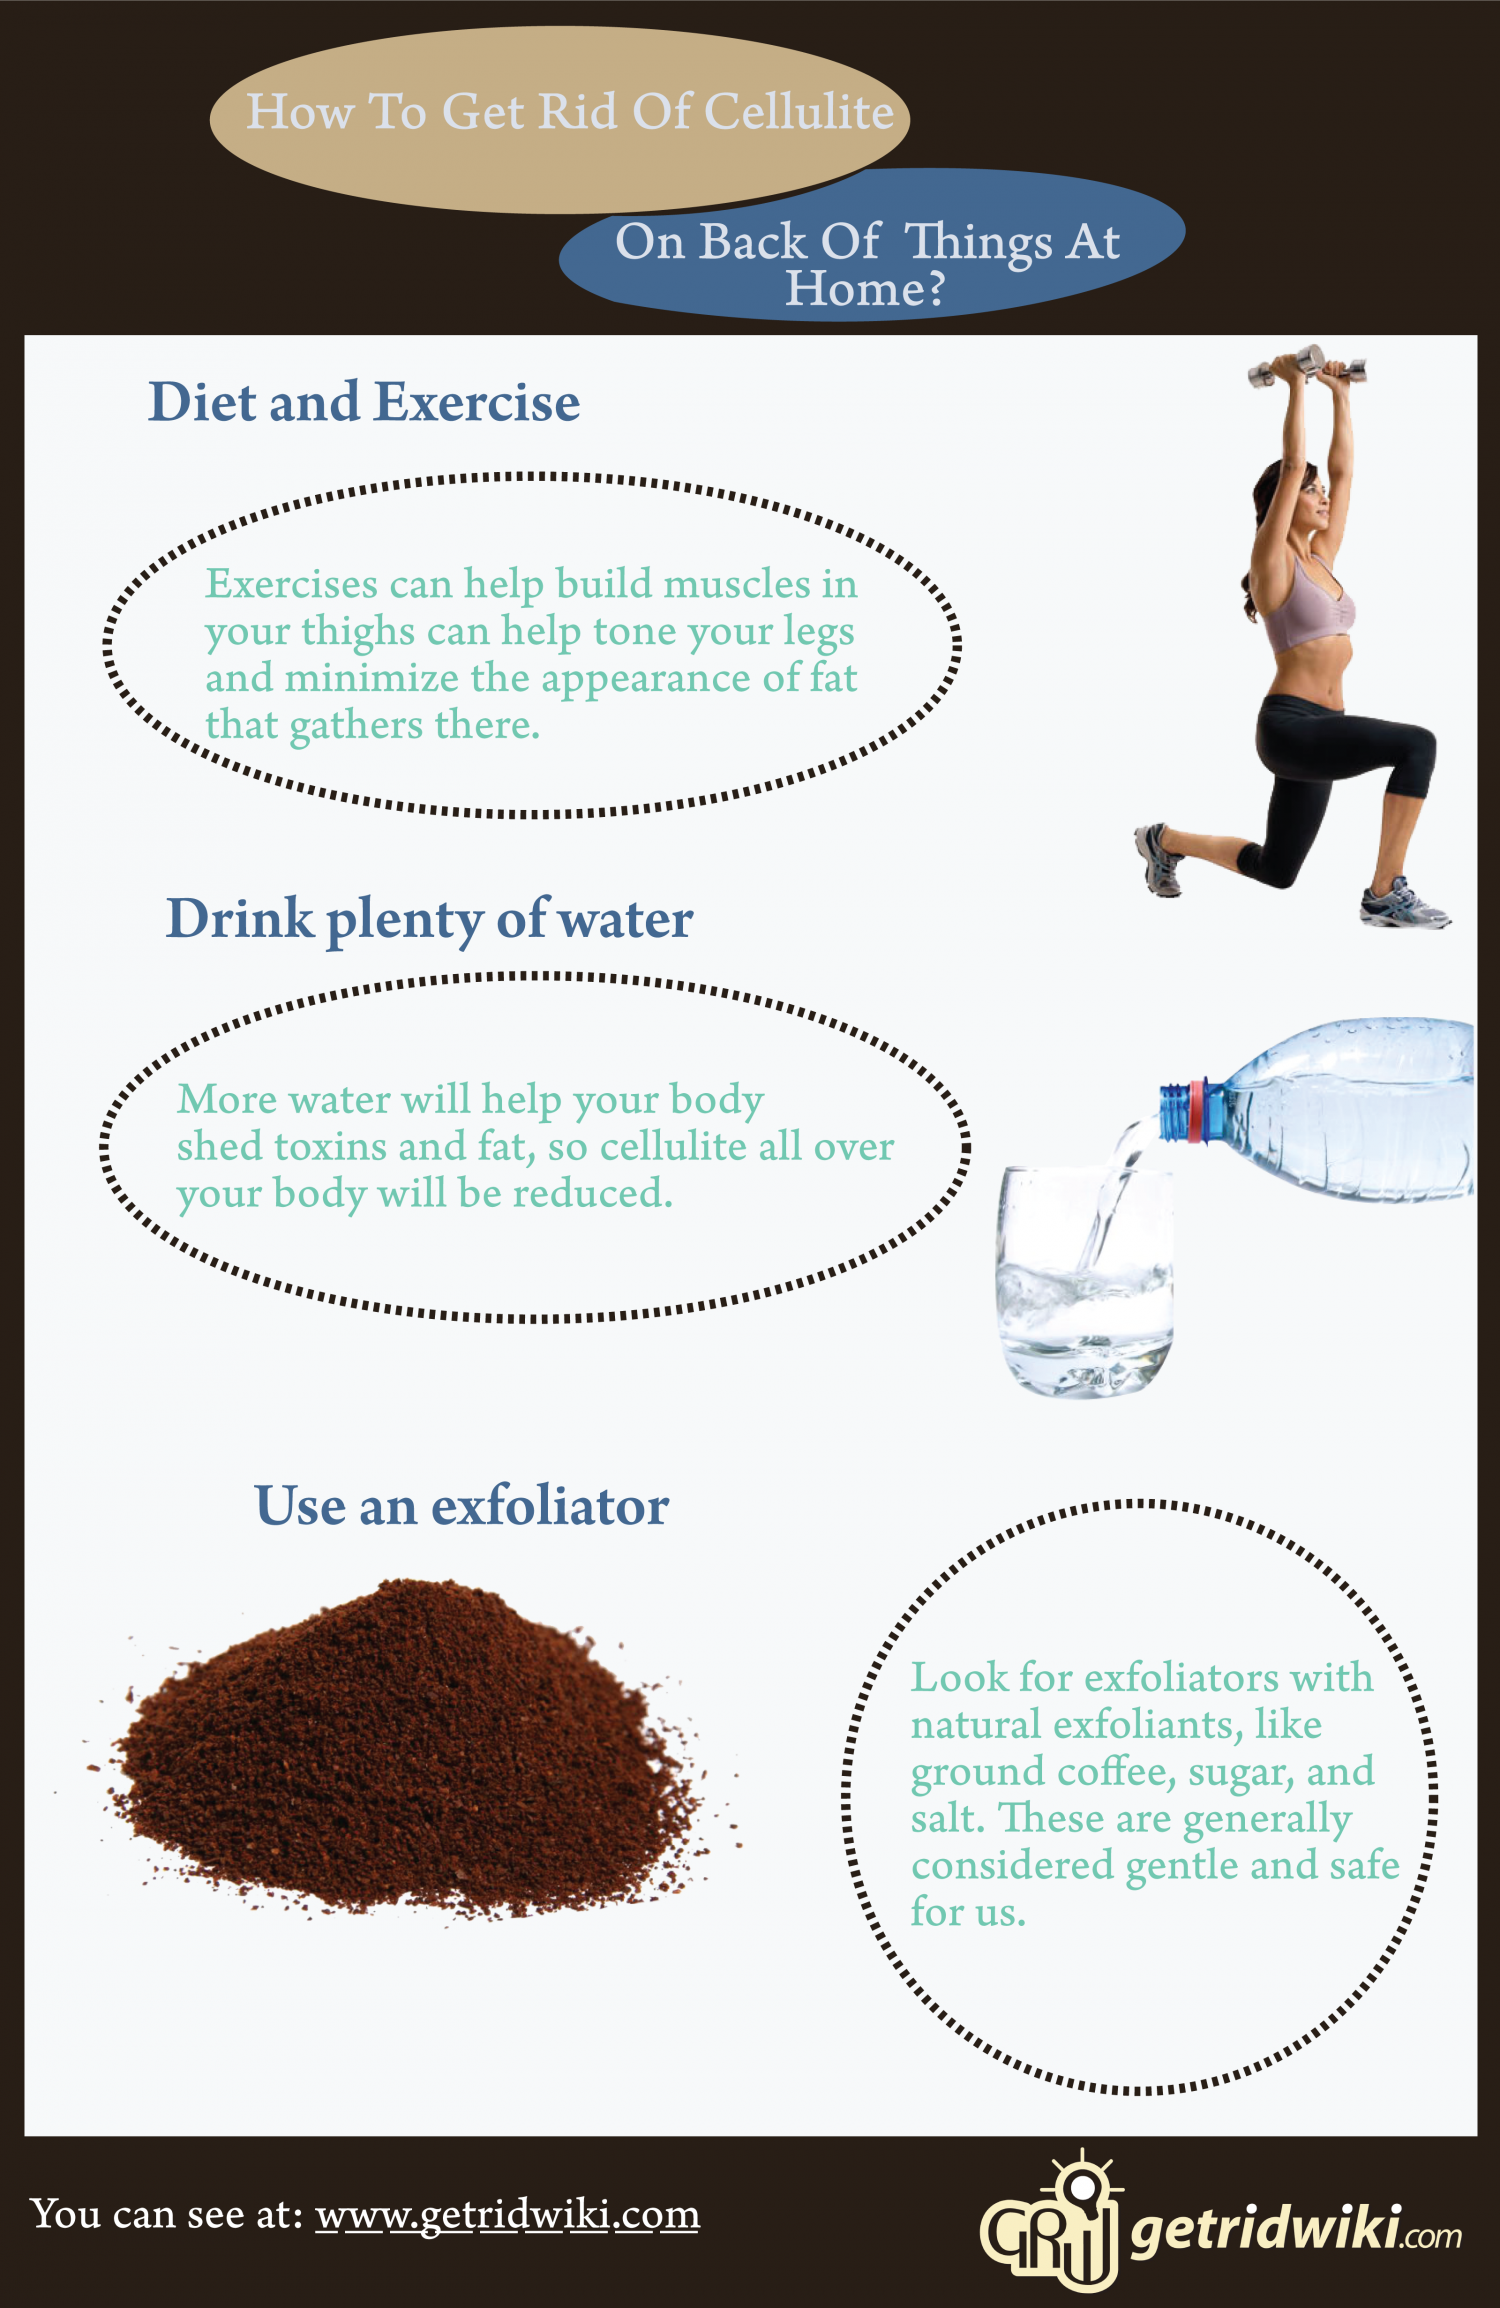 how to get rid of cellulite on back of things at home visual ly